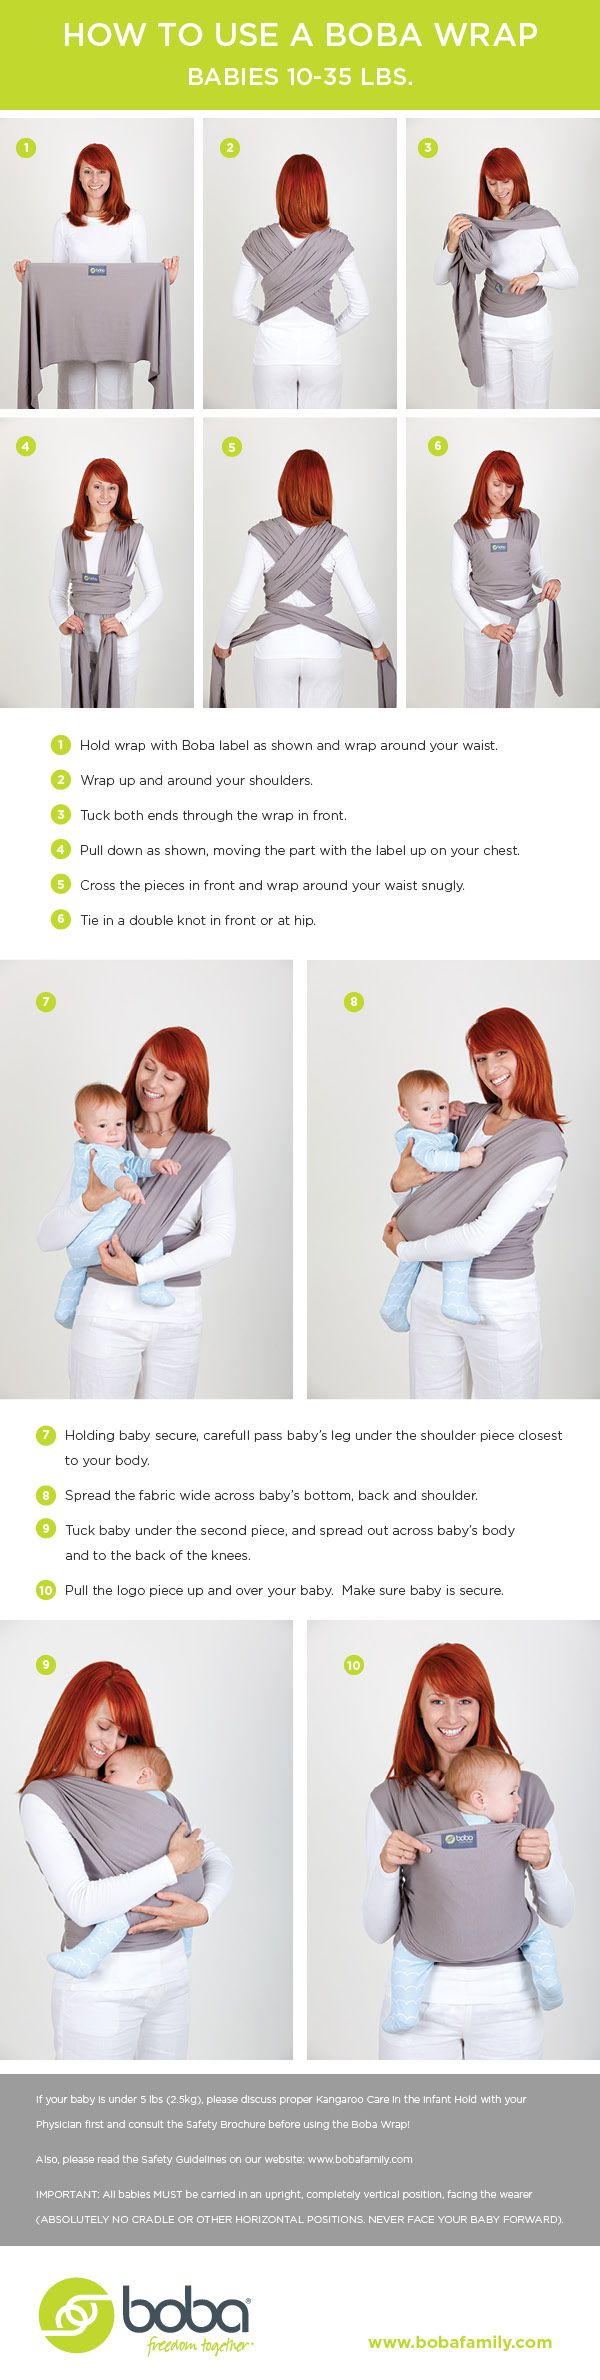 21 Best Child Welfare Images On Pinterest Pregnancy Breast